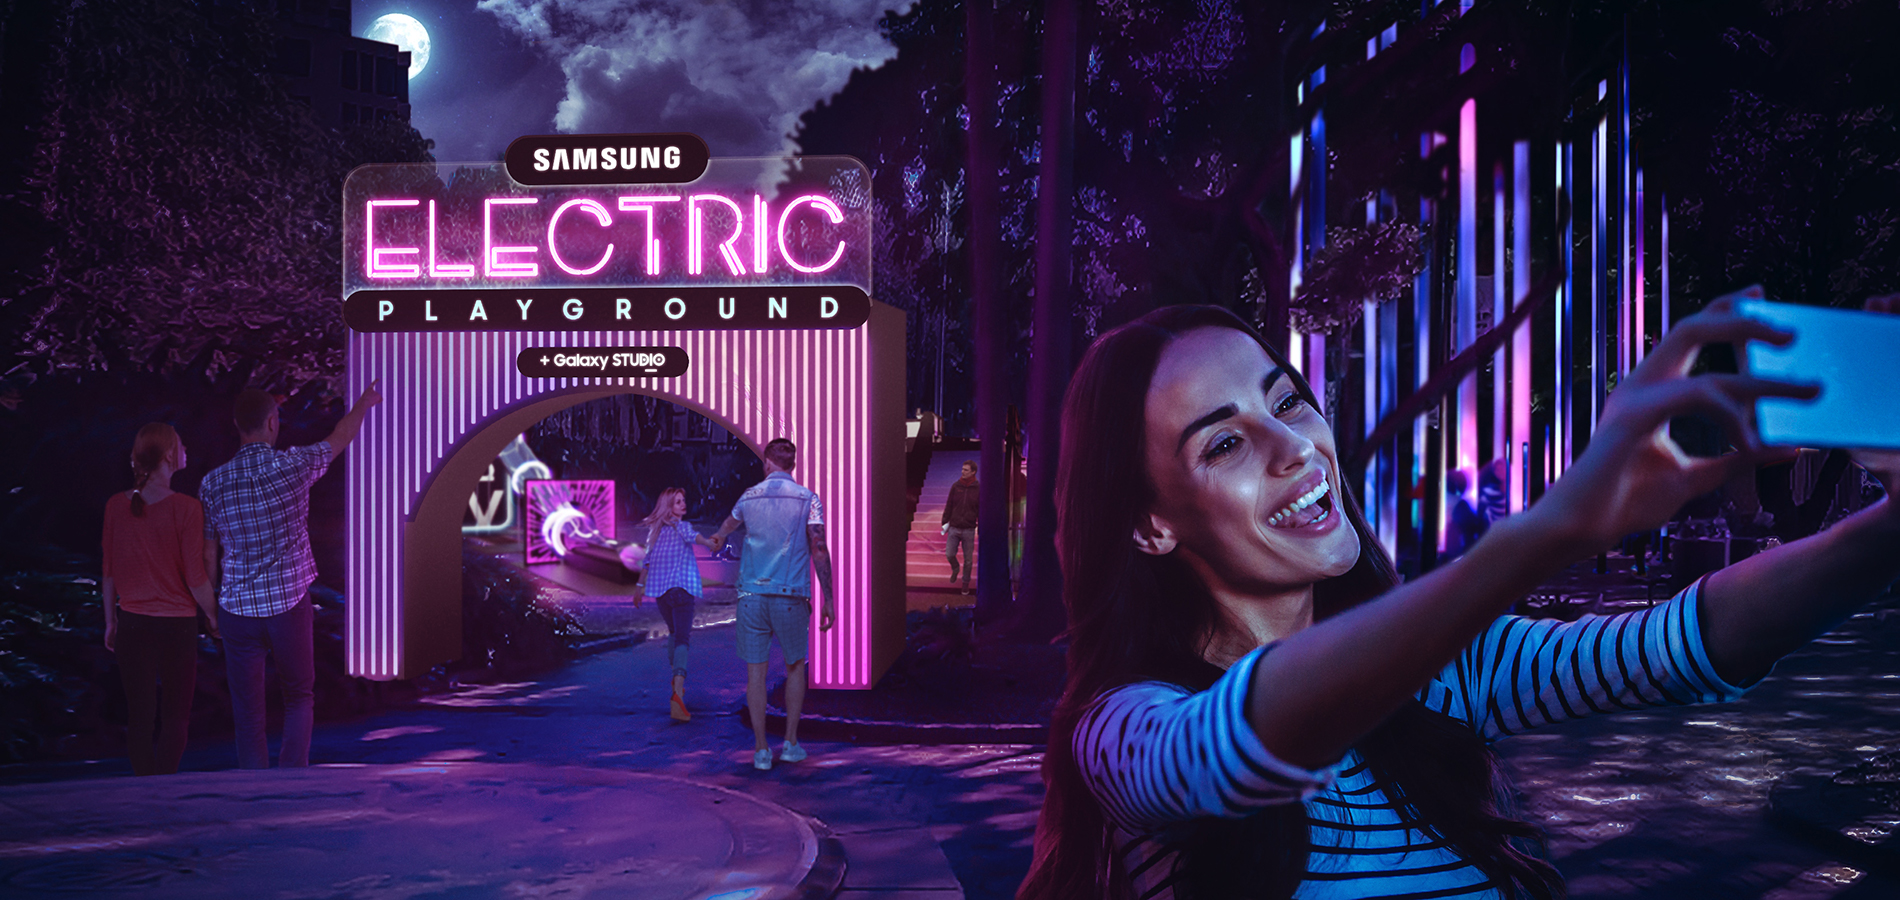 Technology giant Samsung goes experiential at Vivid Sydney